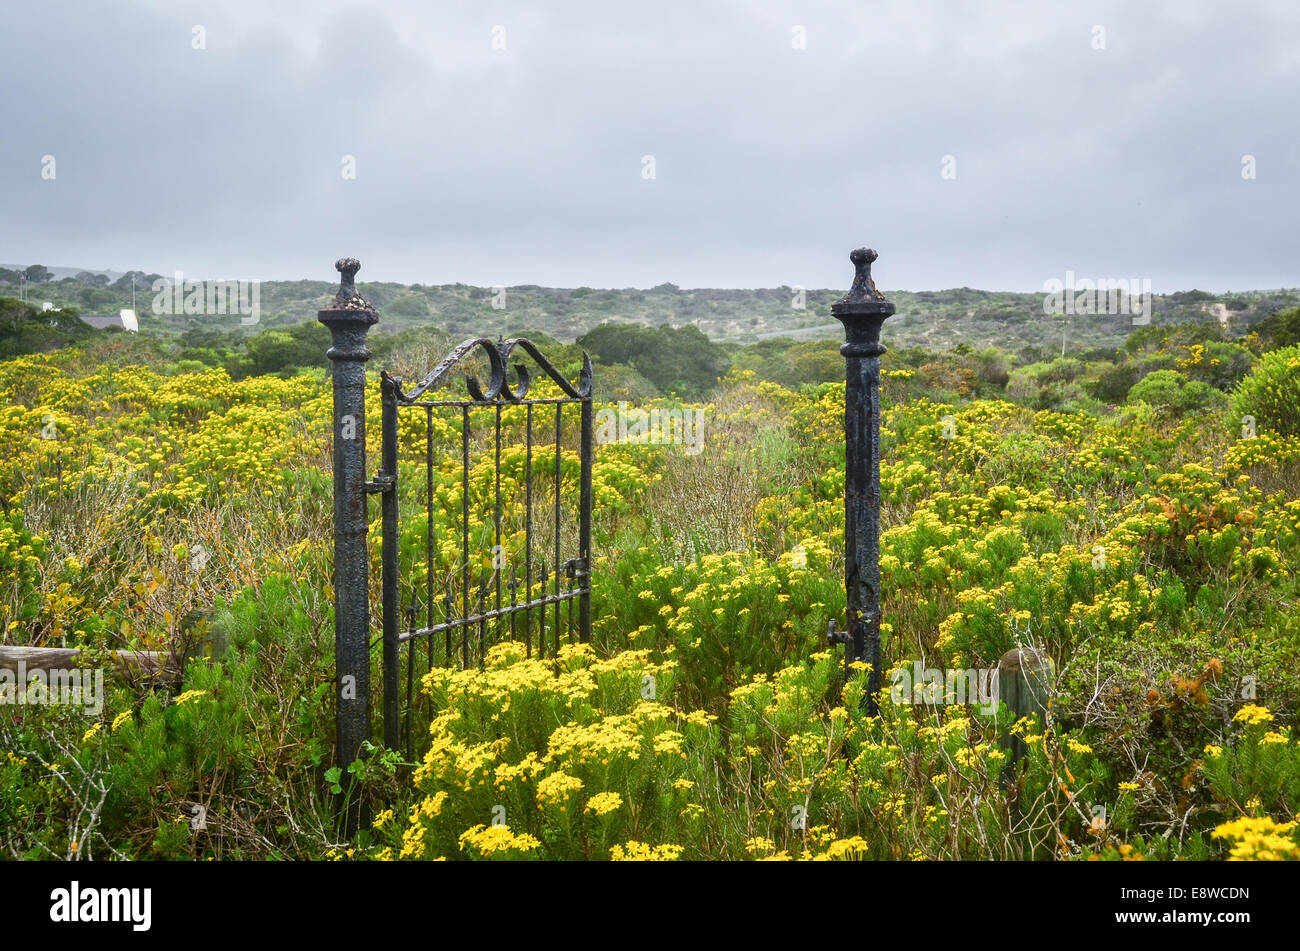 A gate in a field of flowers leading to nowhere - Stock Image